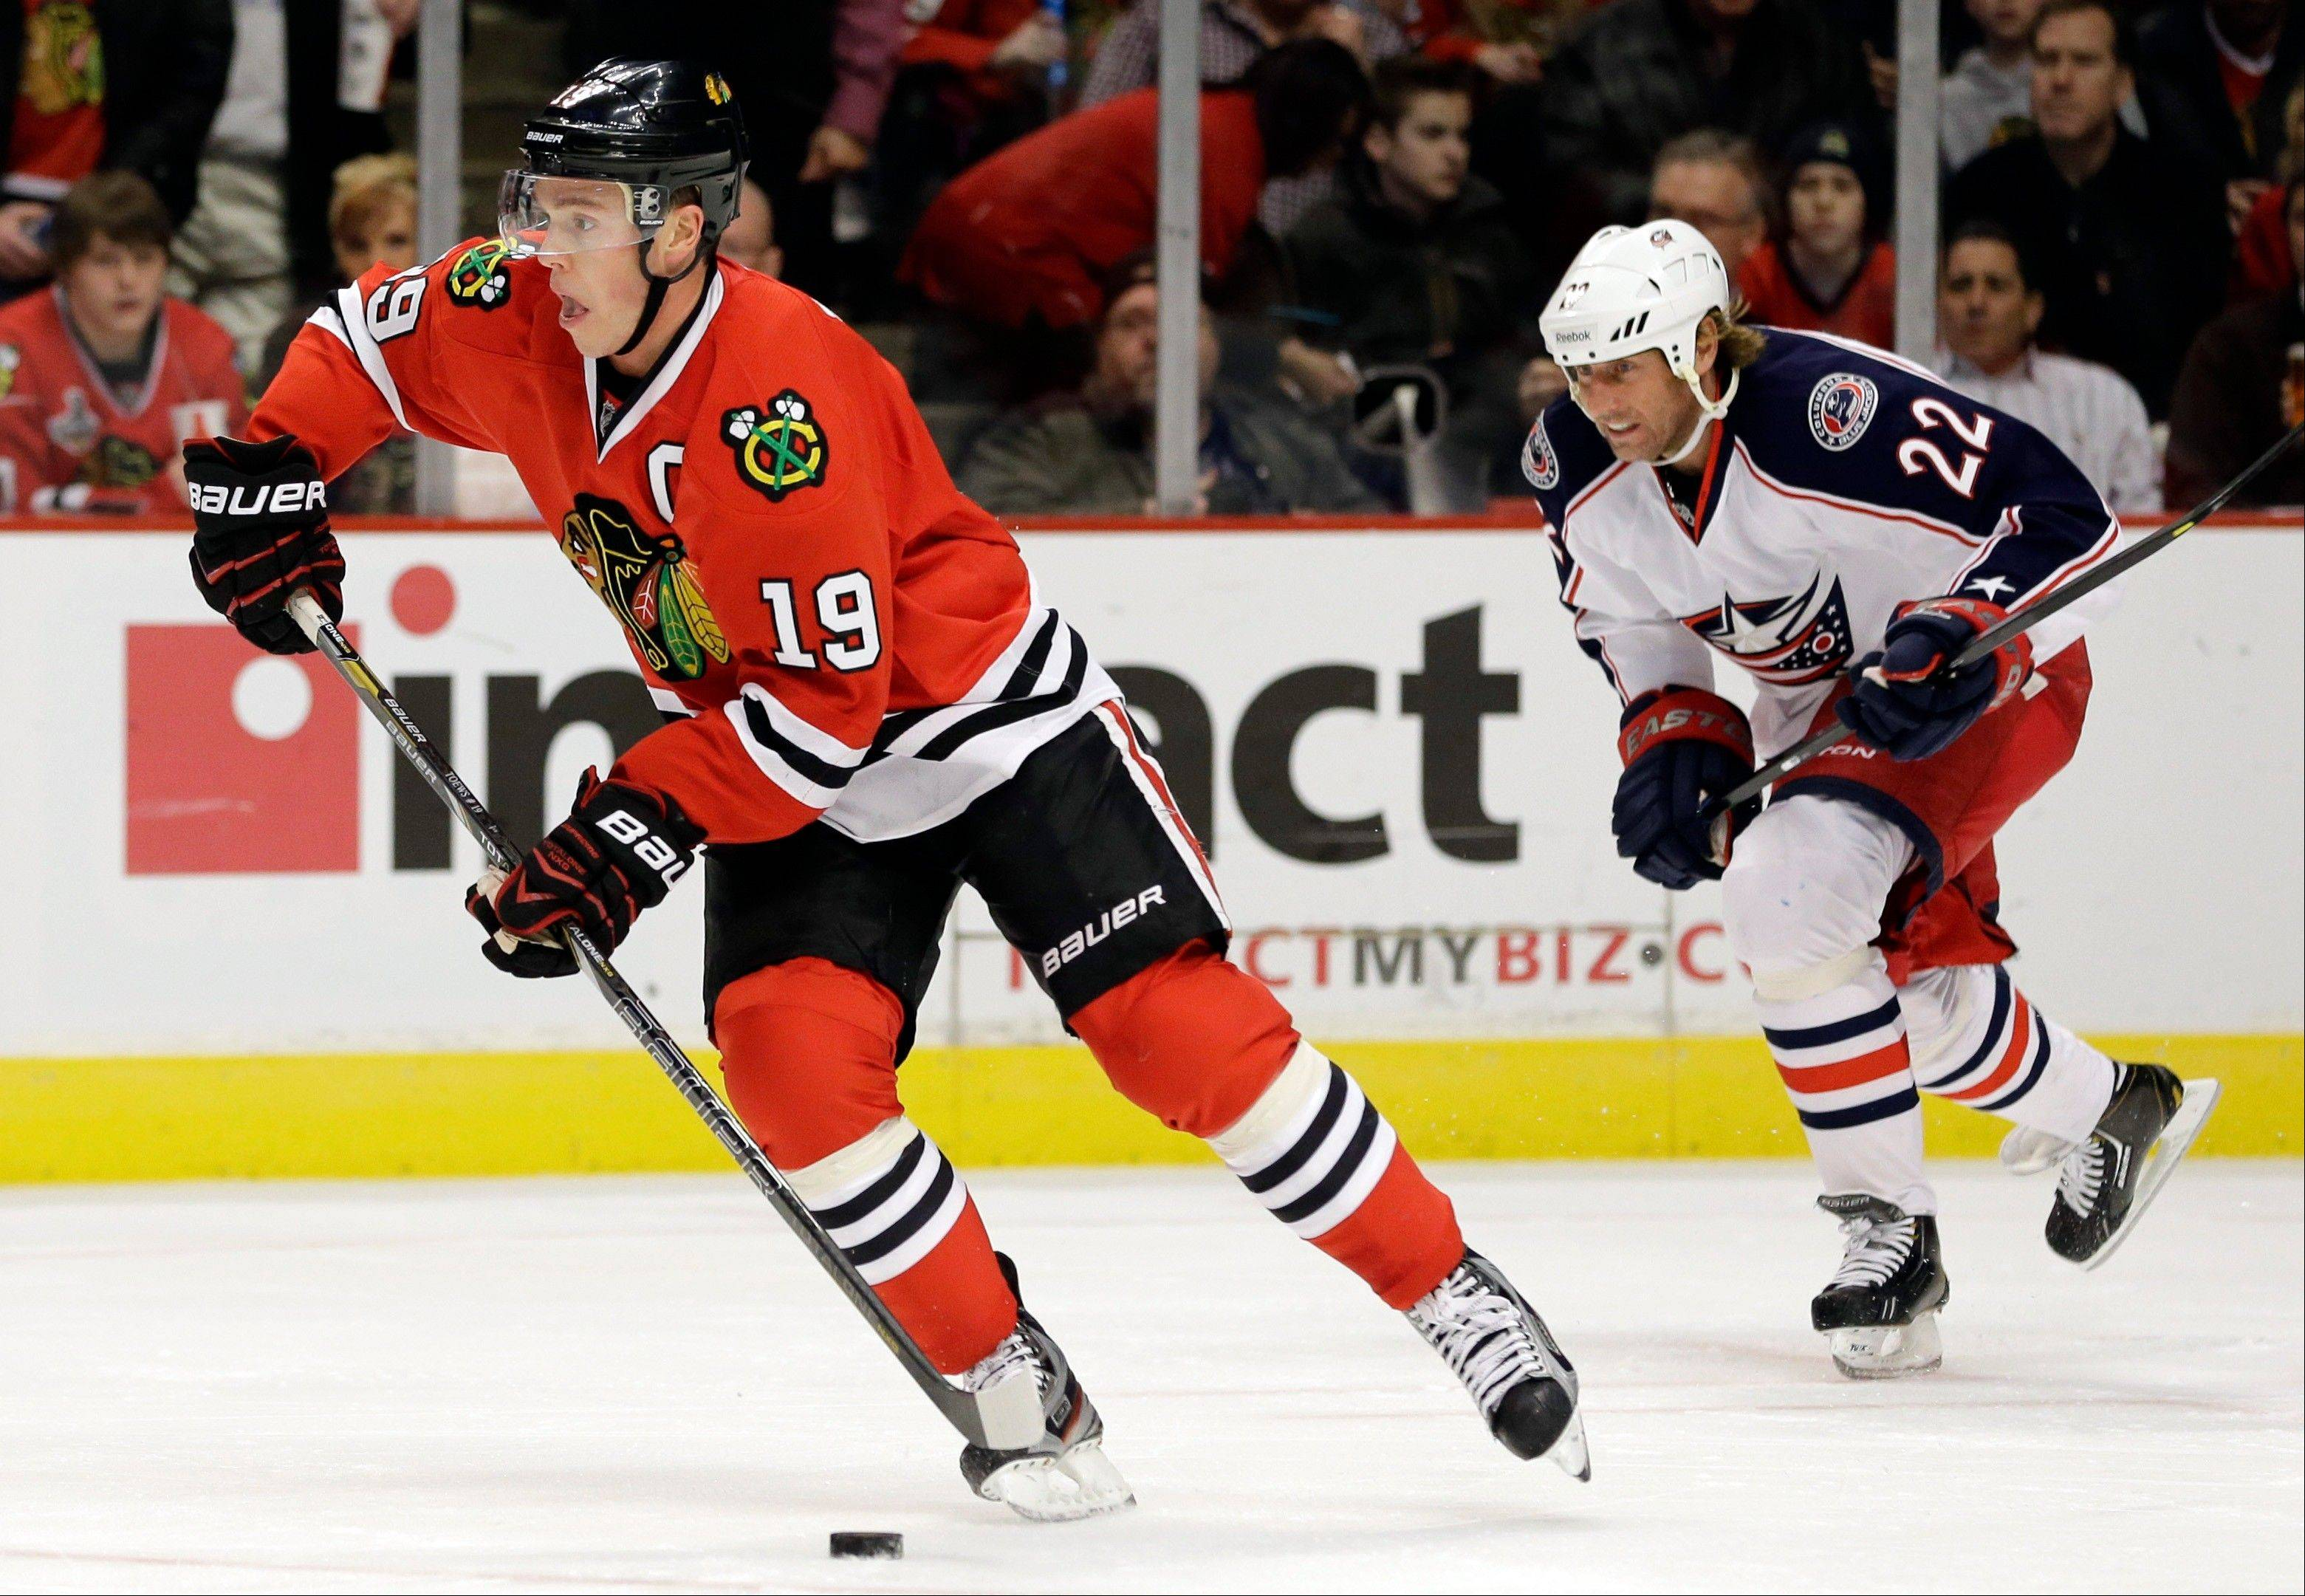 Chicago Blackhawks' Jonathan Toews, left, controls the puck past Columbus Blue Jackets' Vinny Prospal during the first period.